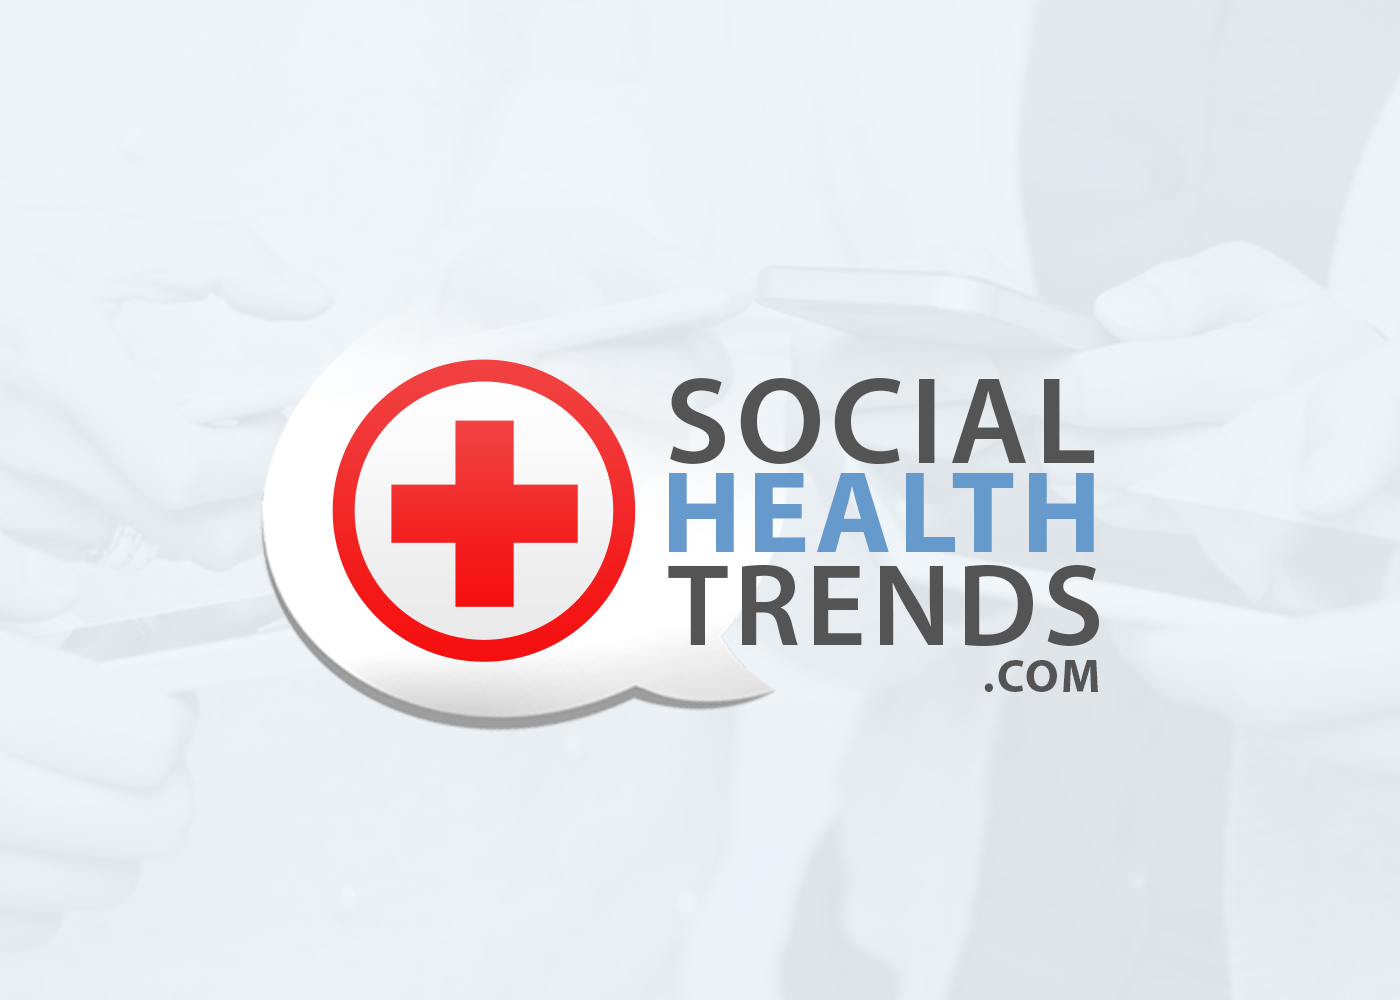 Social Health Trends